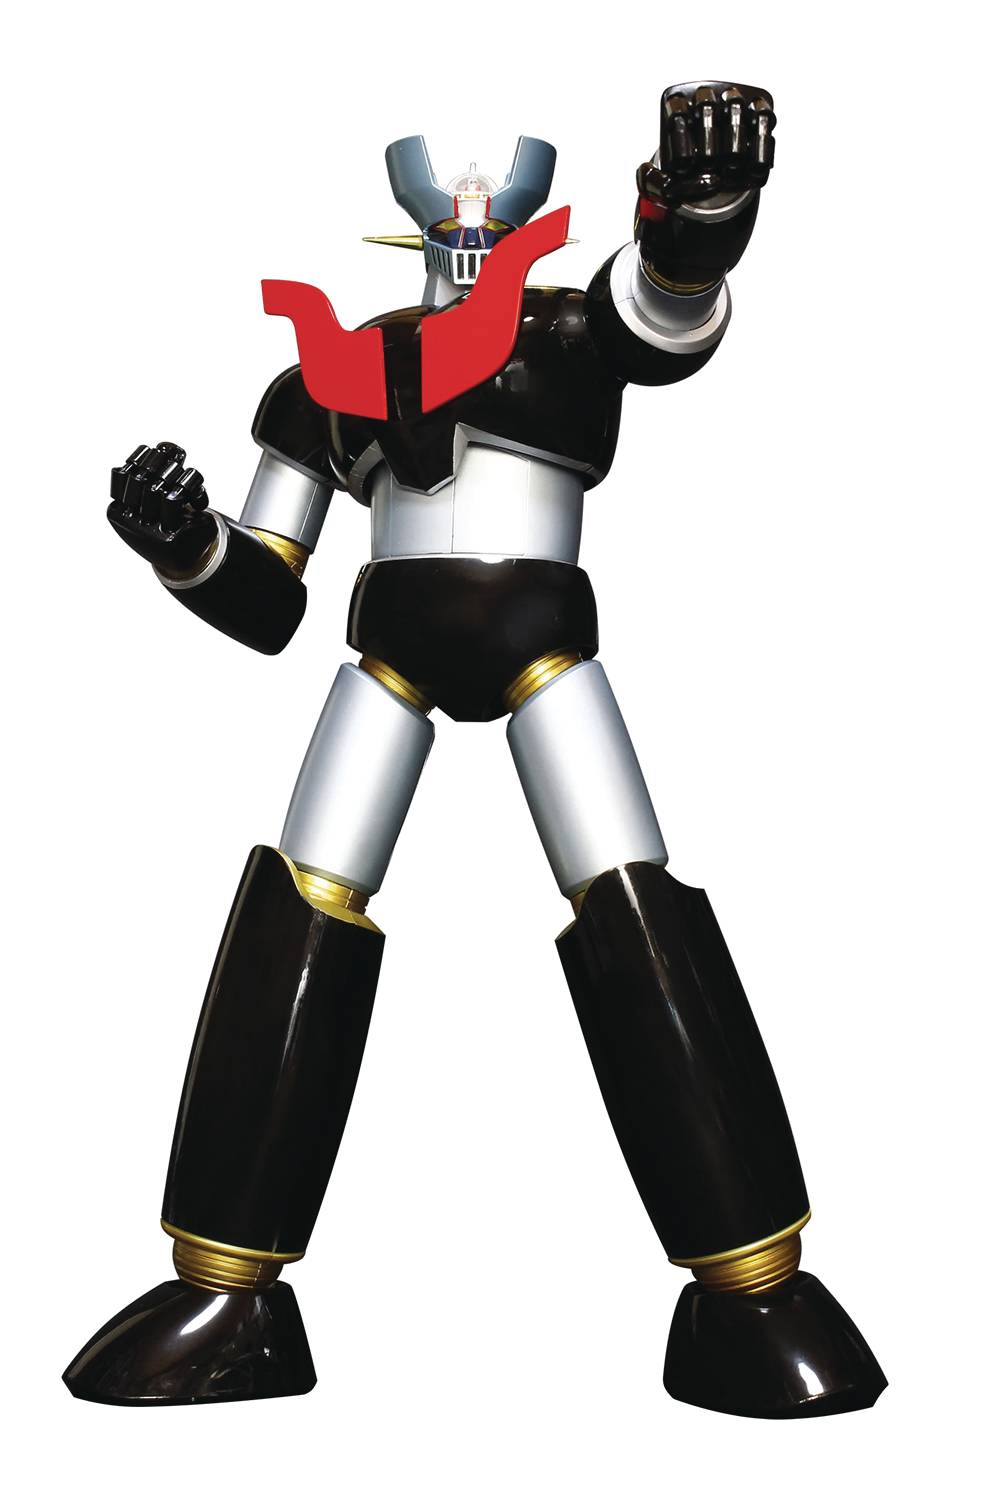 GRAND ACTION BIGSIZE MODEL MAZINGER Z FIGURE COMICS VER